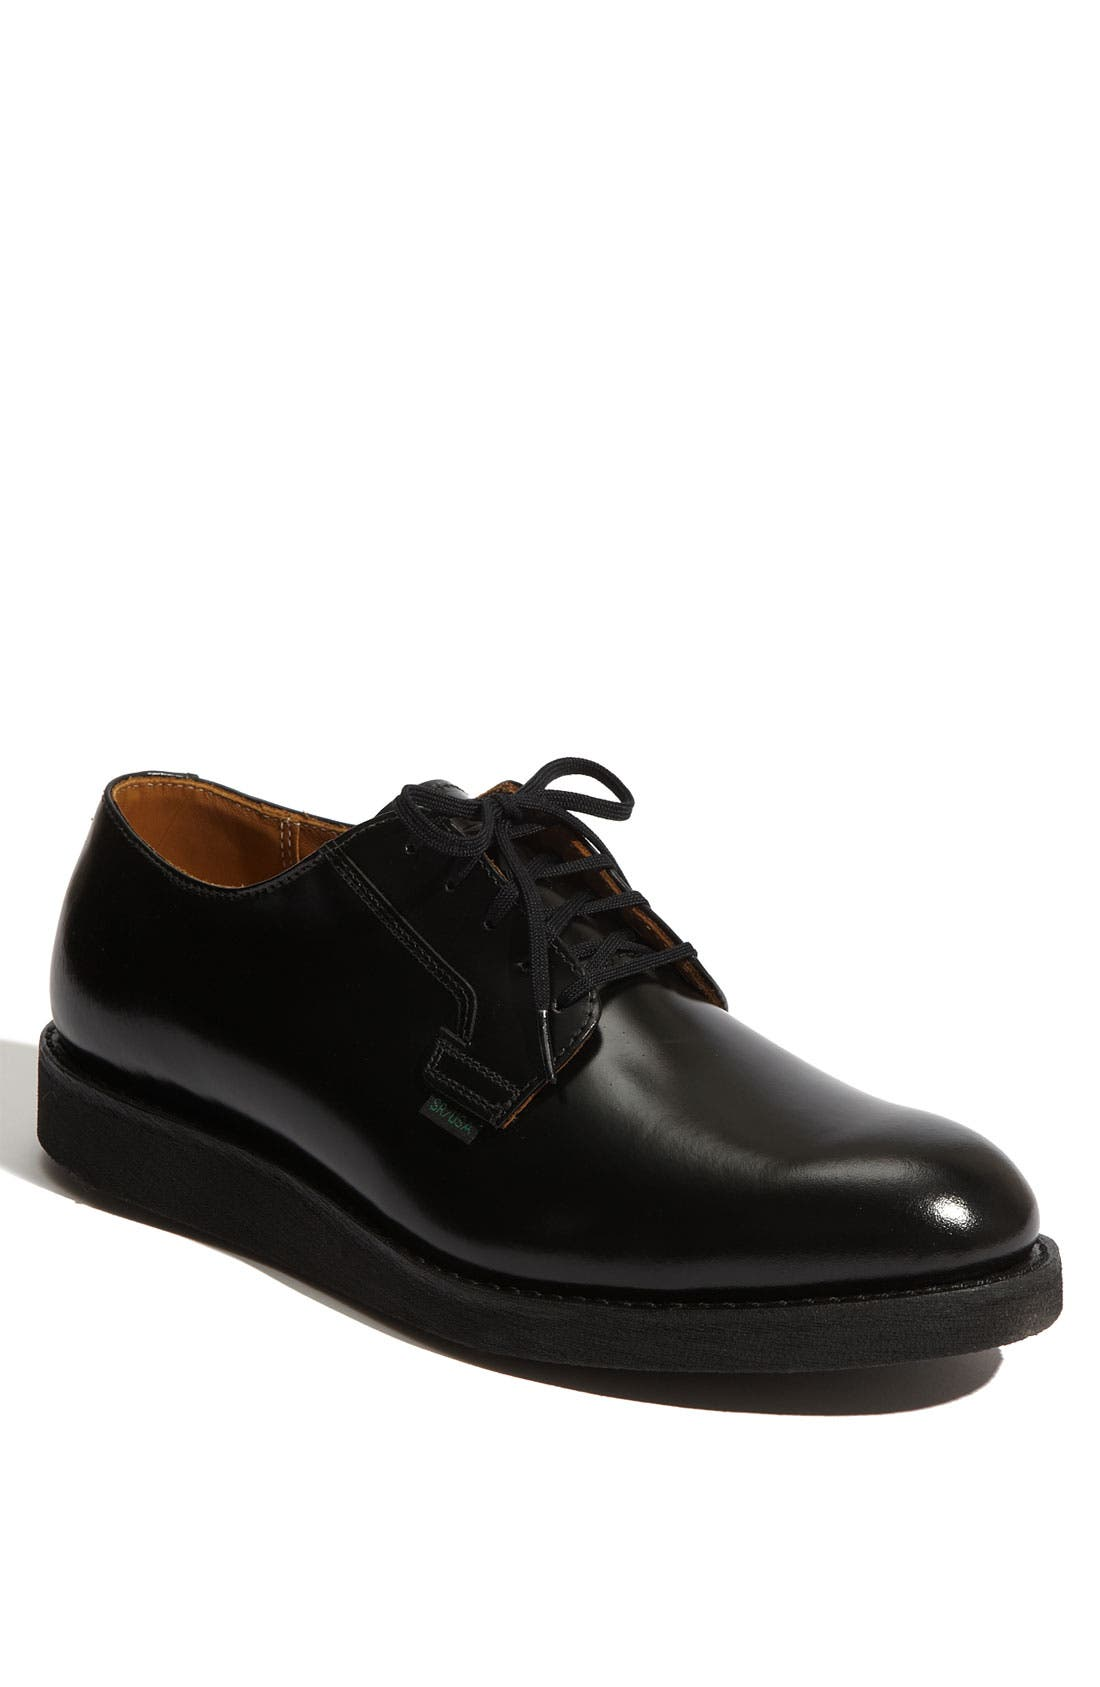 Image of RED WING Postman Oxford - Factory Second